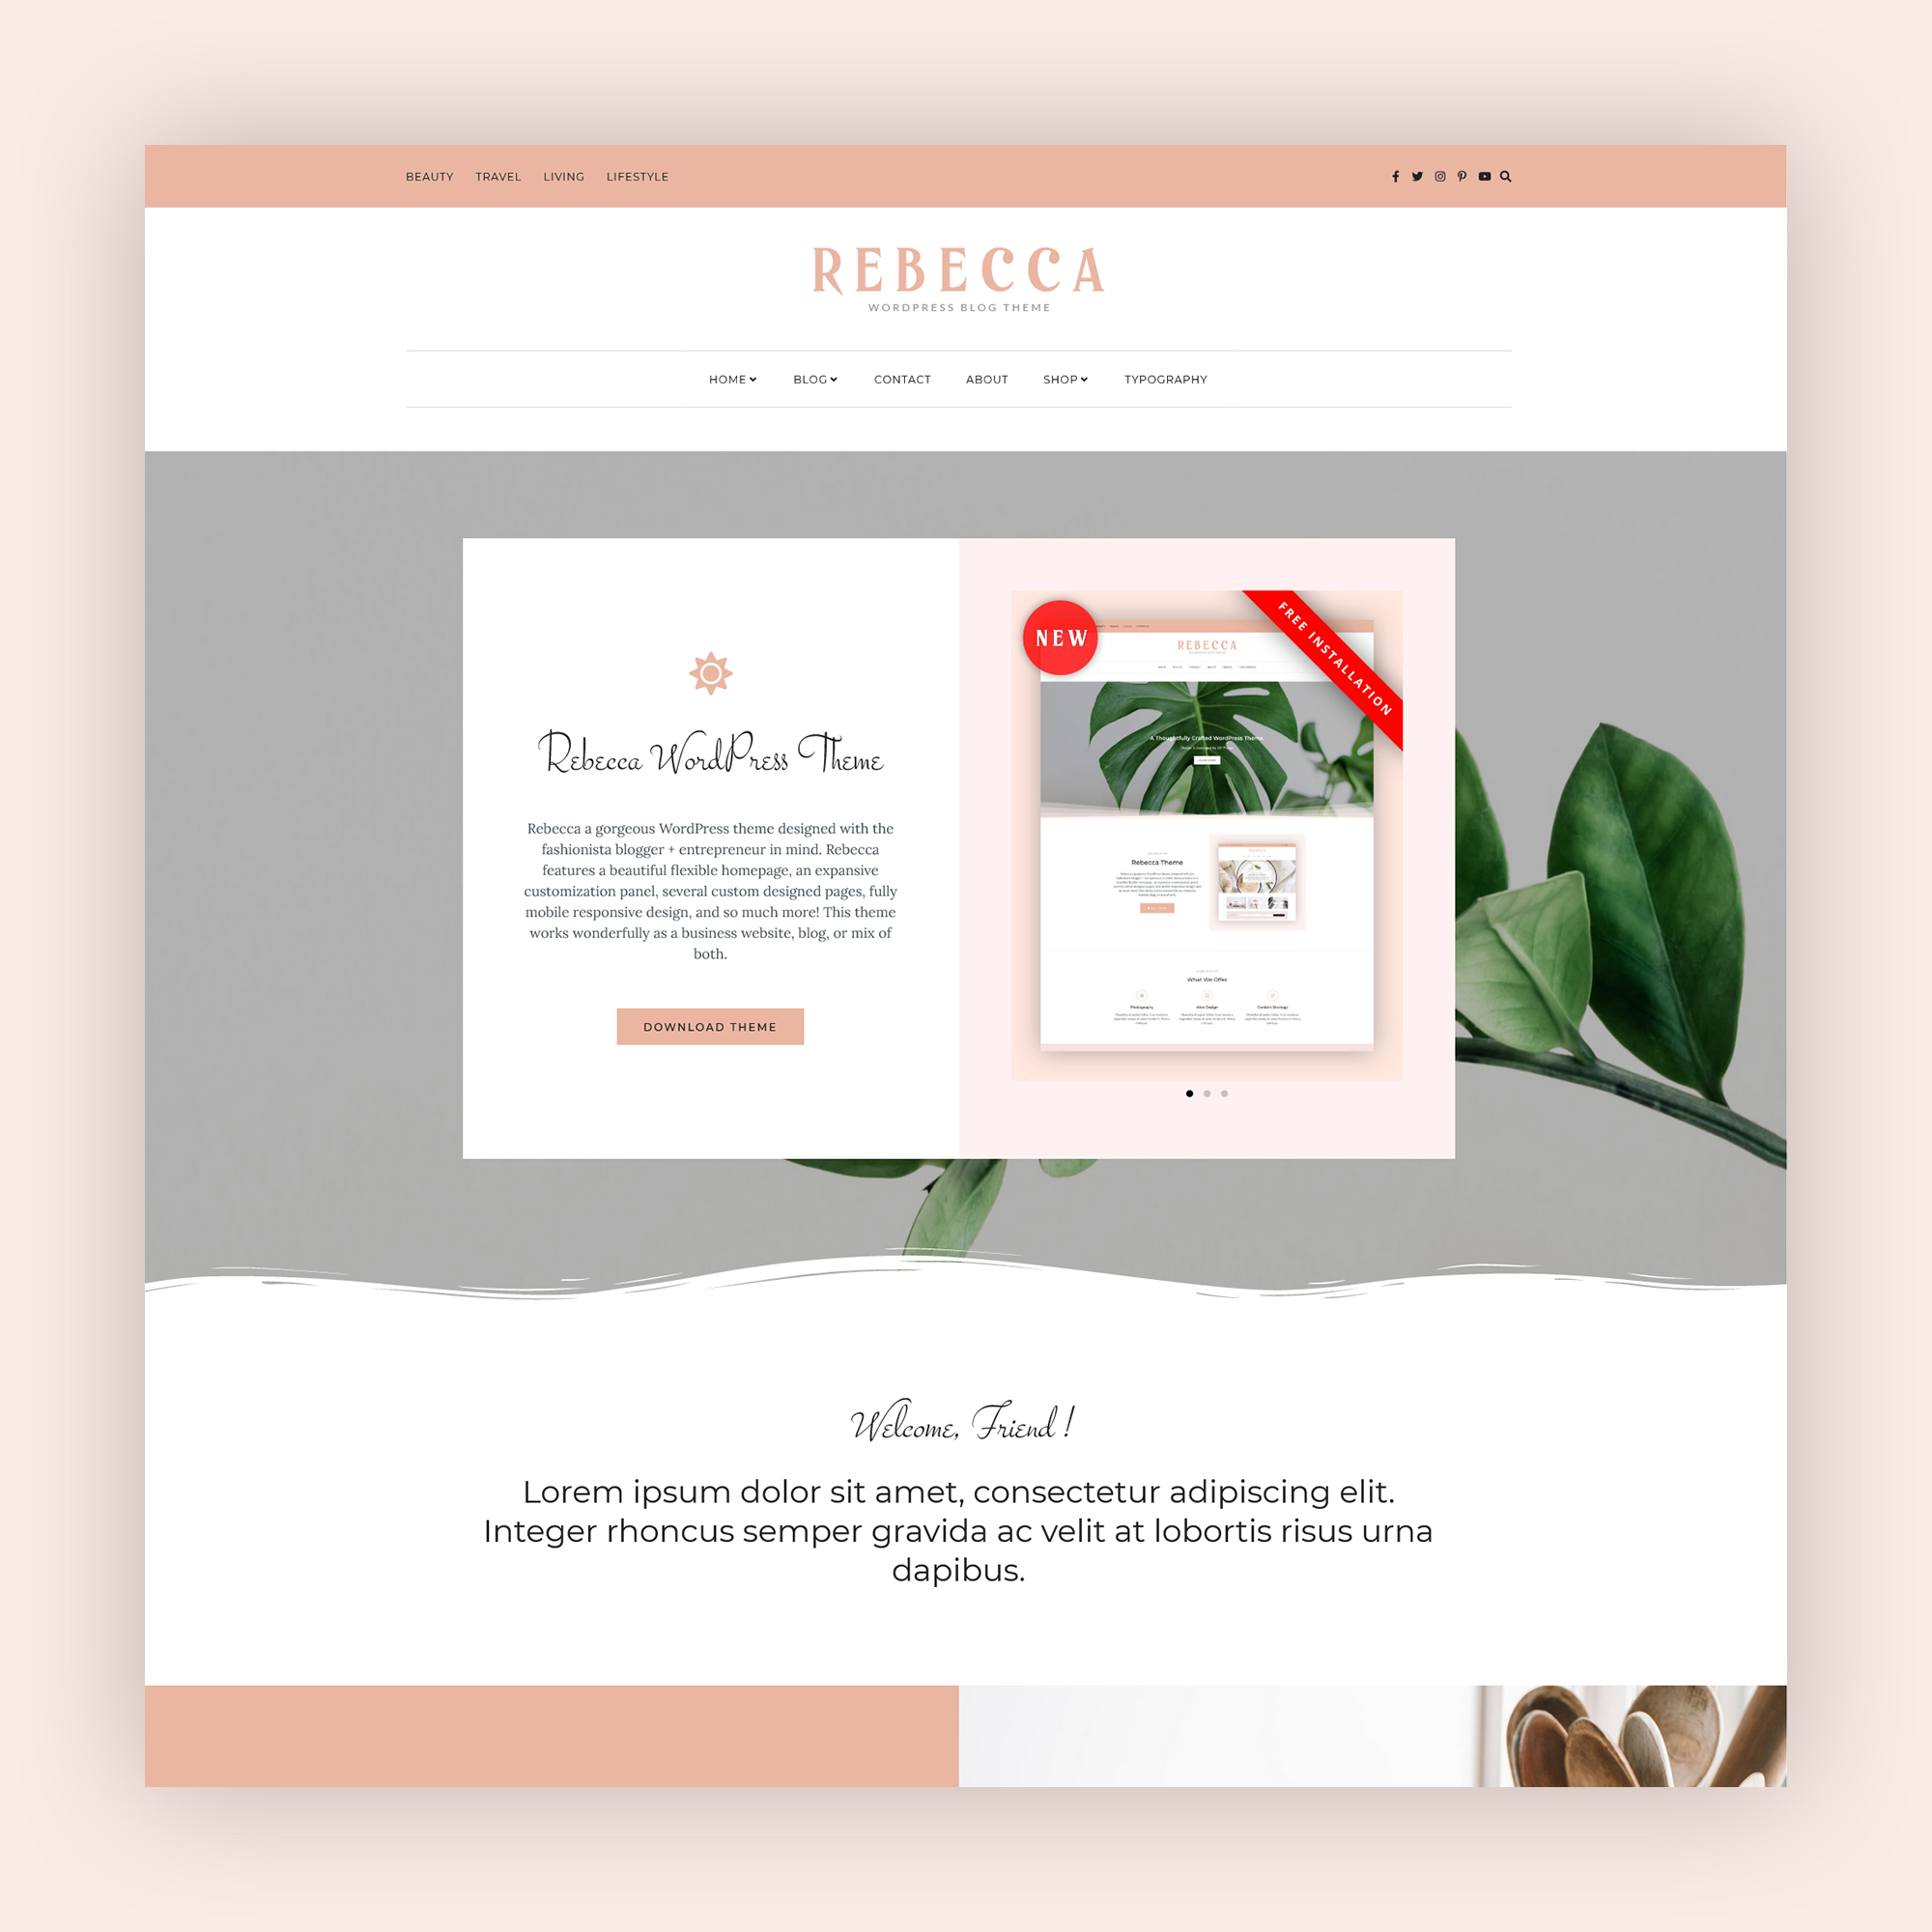 rebecca-wordpress-blog-and-shop-theme-1.